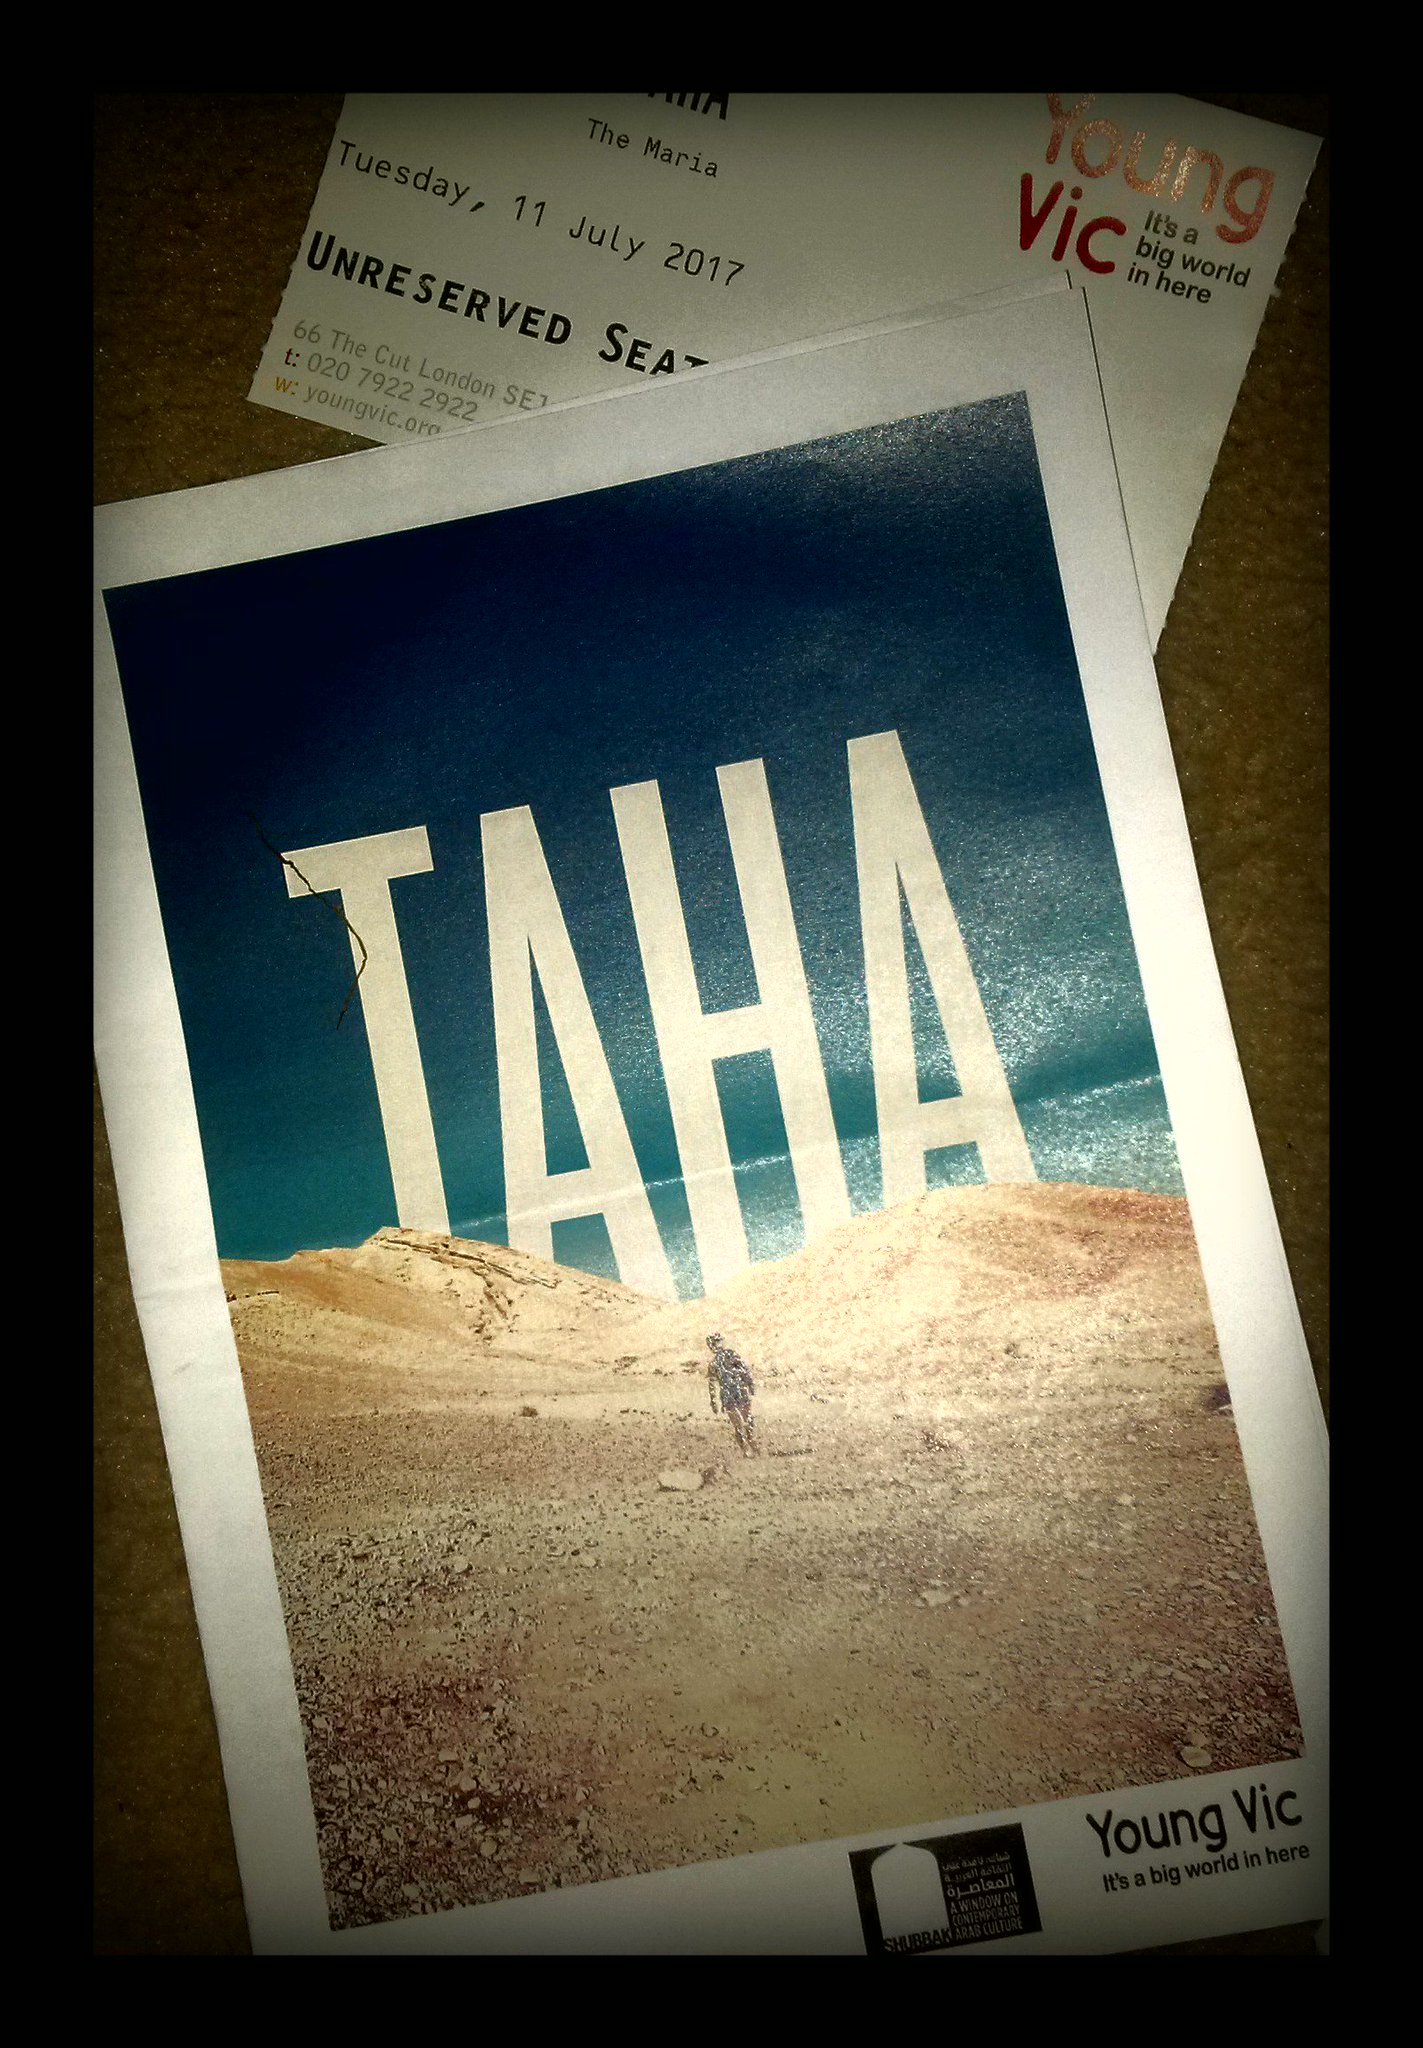 Amer Hlehel gives a fantastic performance in  #Taha @youngvictheatre @shubbakfestival  beautiful & powerful ***** https://t.co/oZjw1JxDAm